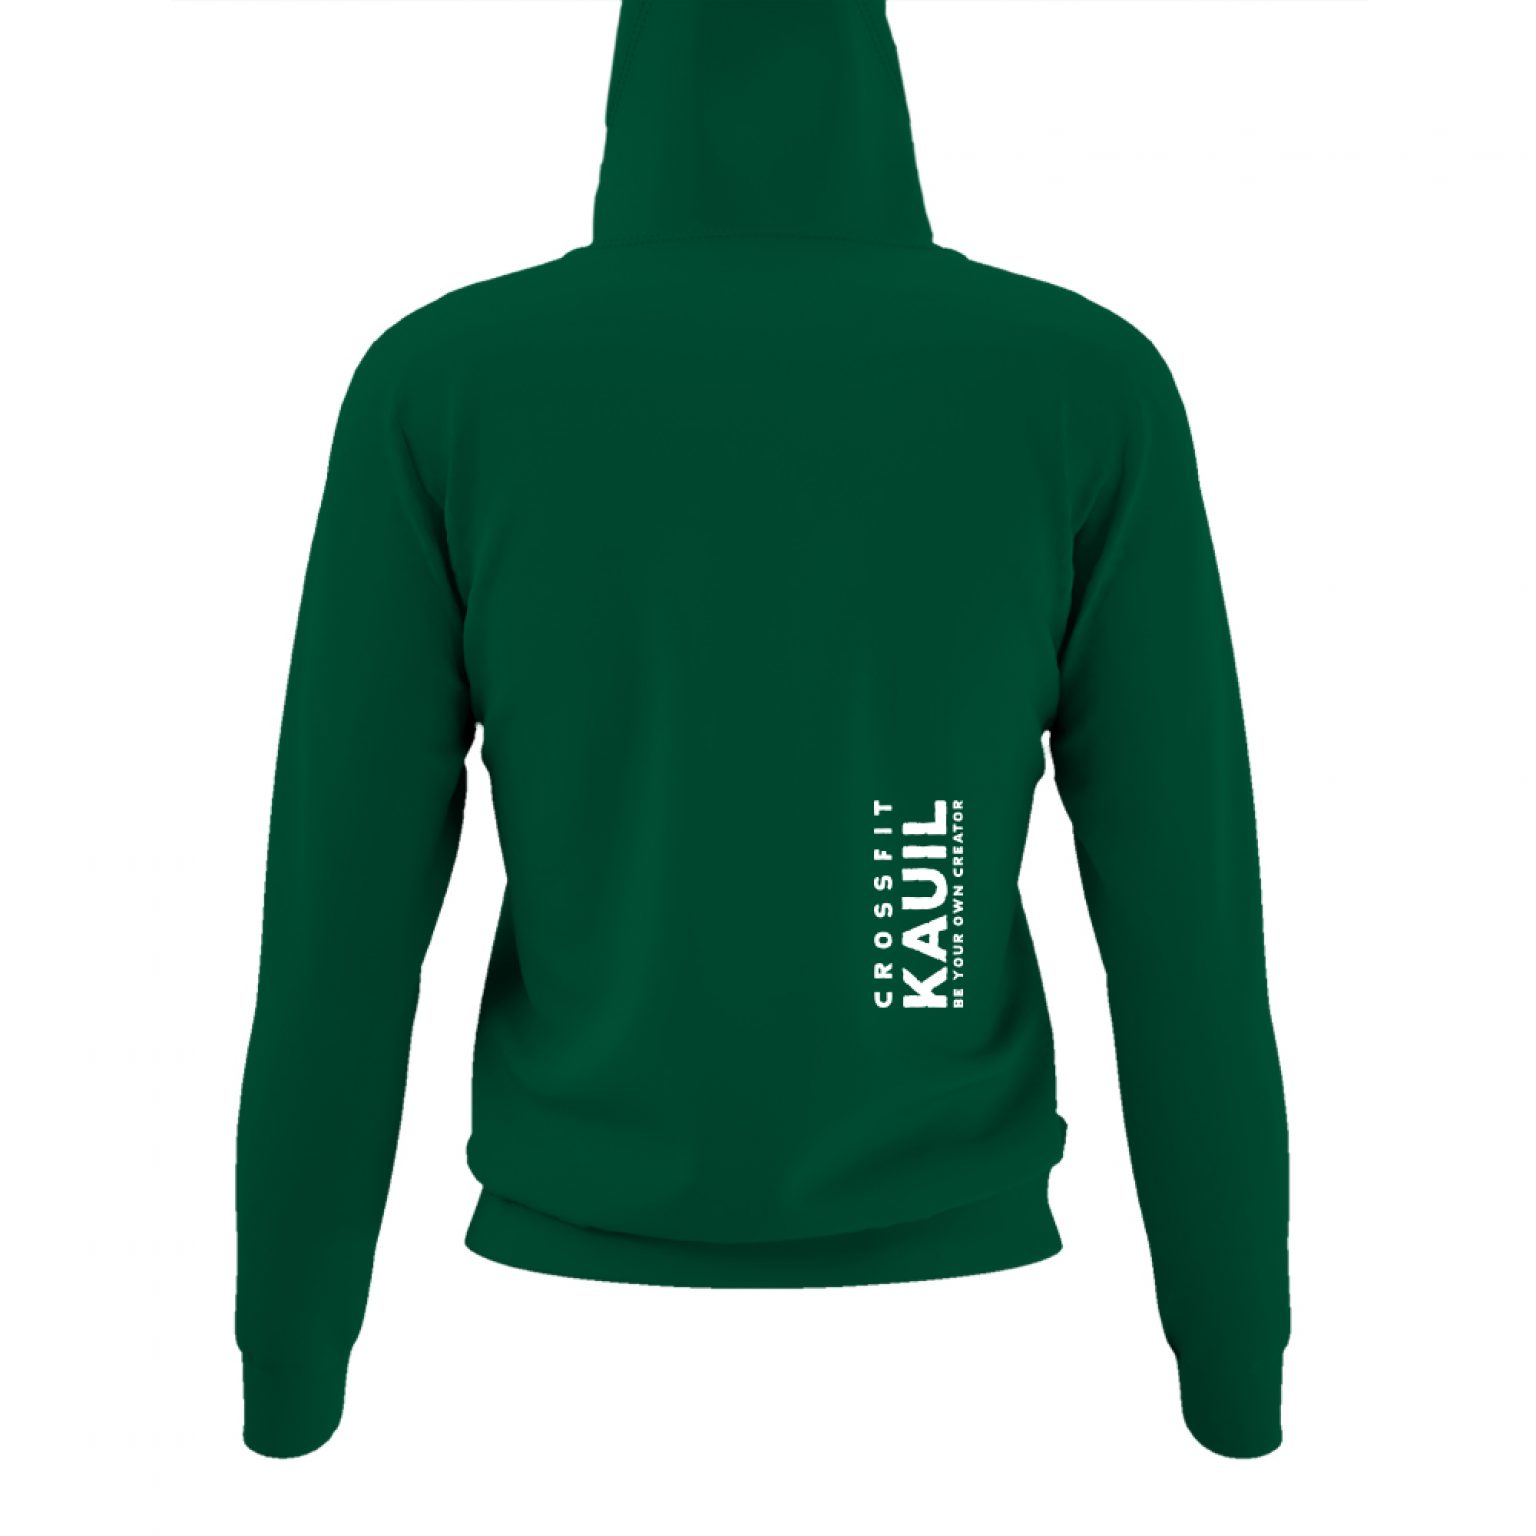 DamenHoody Bottlegreen1 weiss back